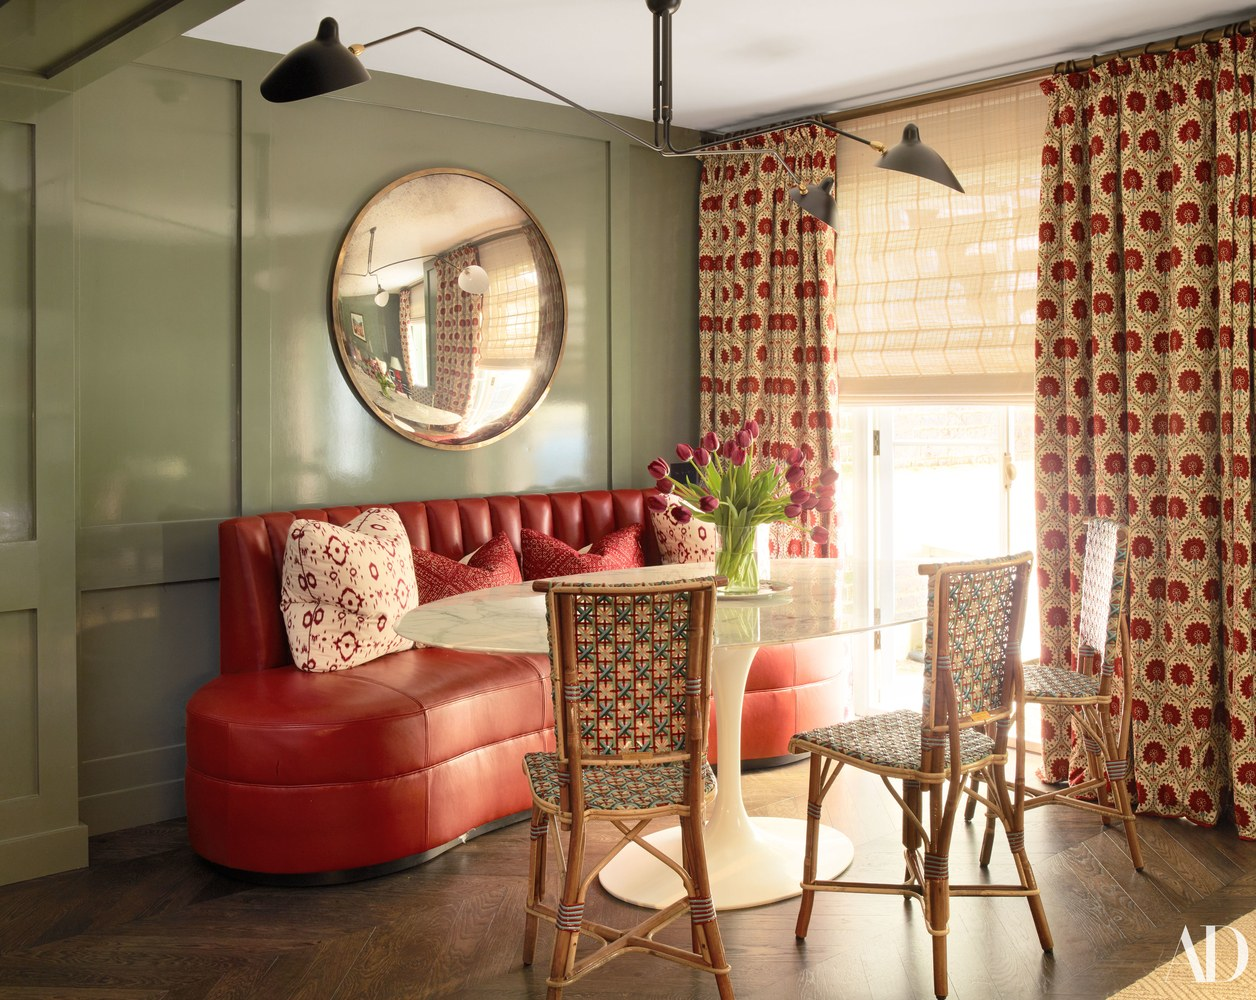 Veere Grenney Nina Flohr London Townhouse Dining Room Serge Mouille Banquette Saarinen Table Lacquered Green Walls Floral Curtains Katie Considers